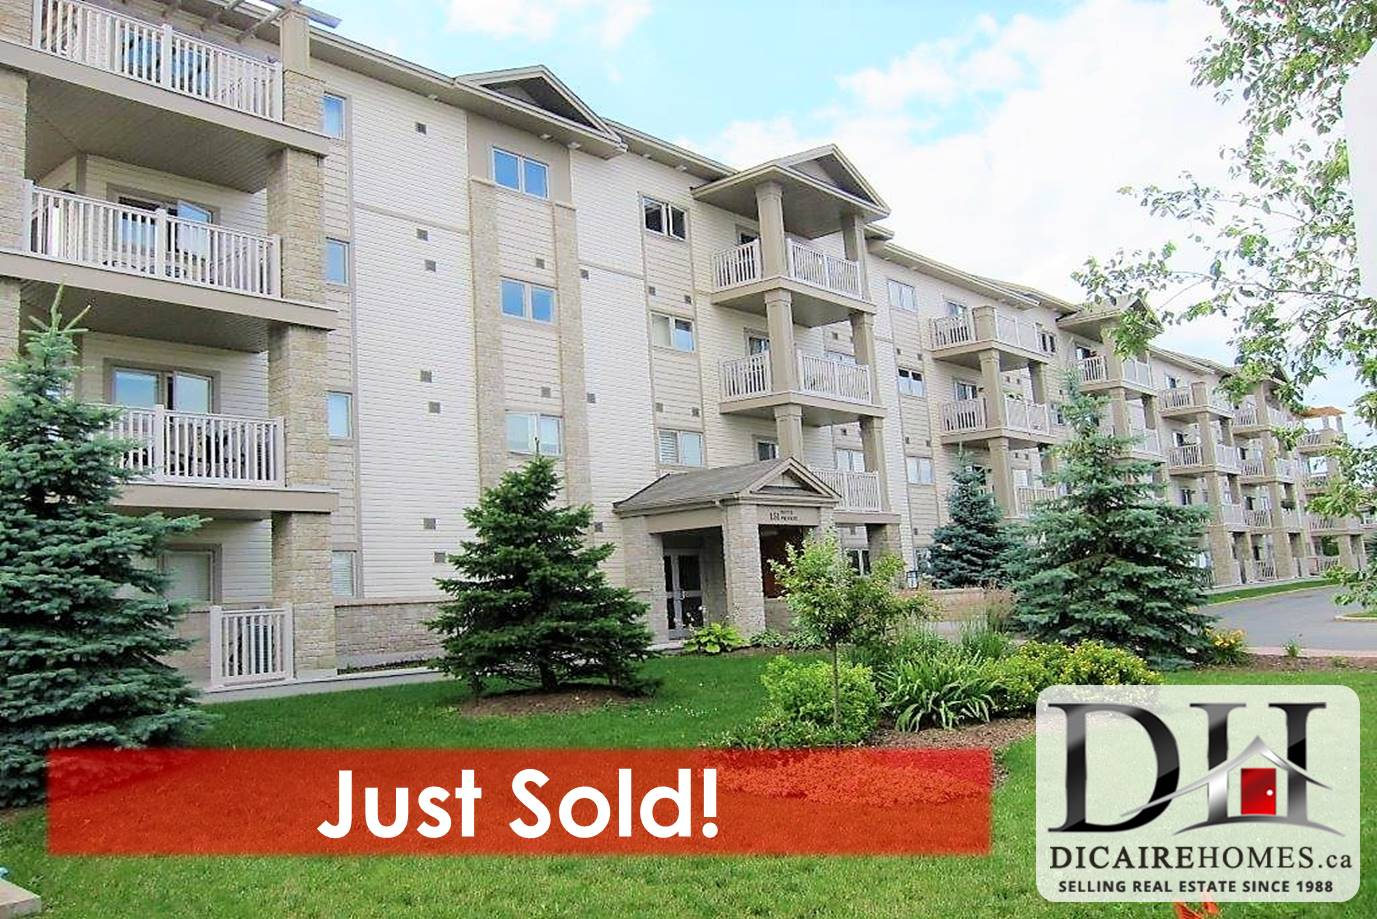 JUST SOLD - 151 Potts Private #208.jpg